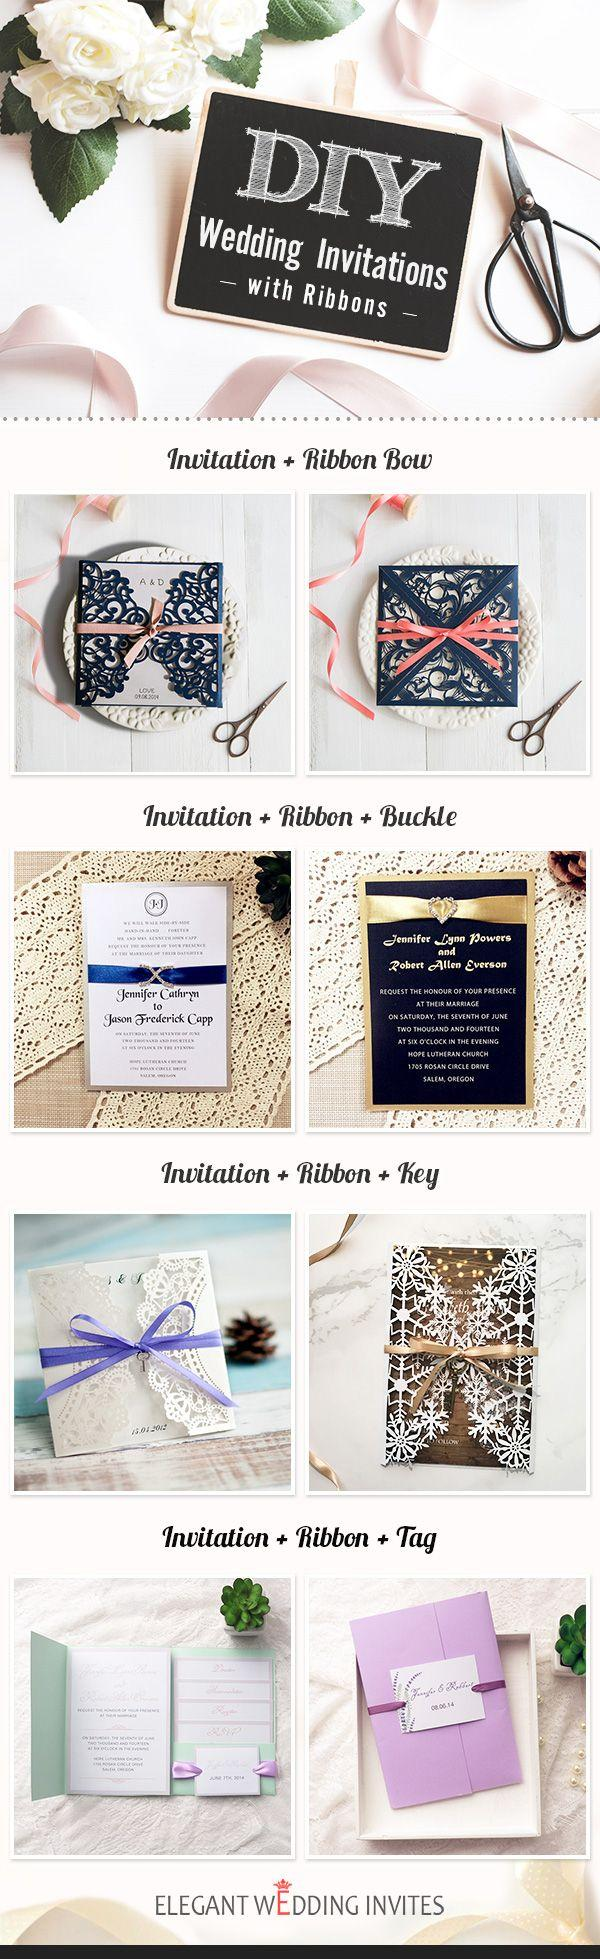 Wedding - Top 6 DIY Wedding Invitations And Ideas By Elegant Wedding Invites